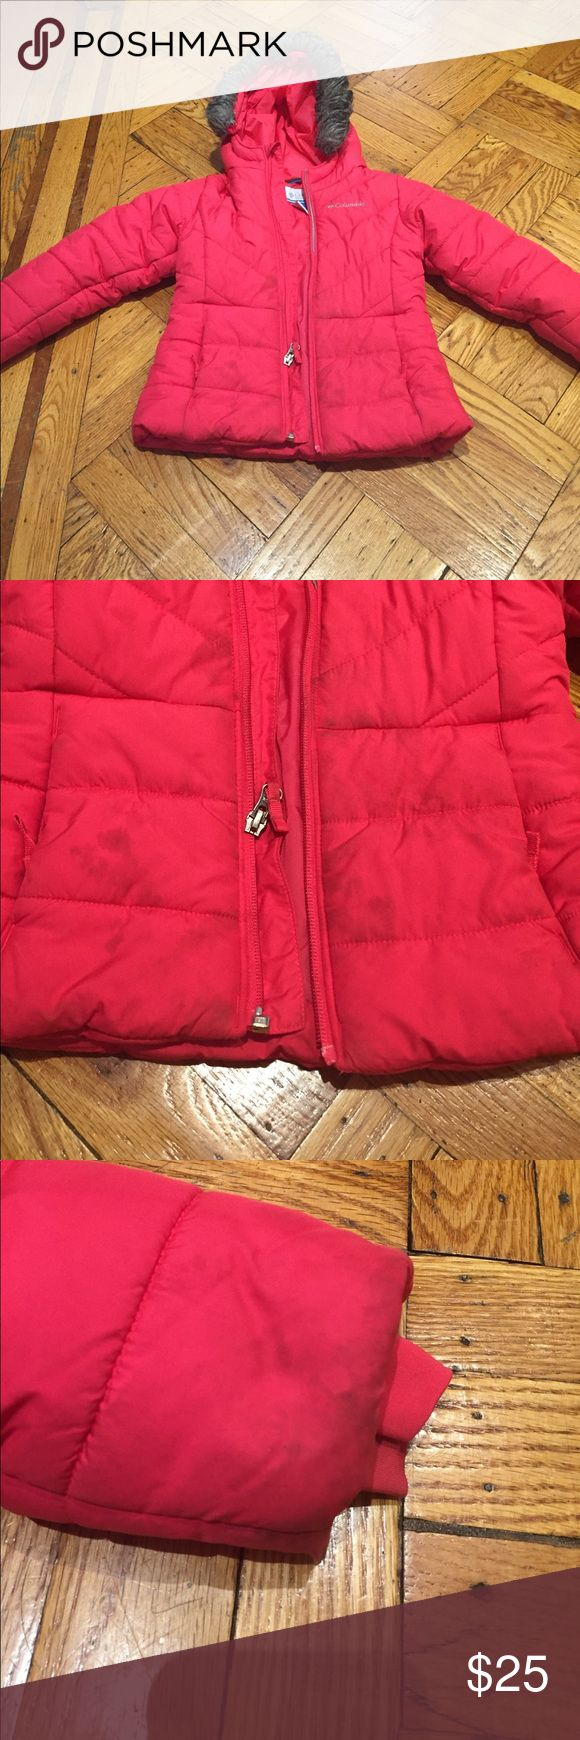 ☃️COLUMBIA Toddler Girl winter puffer jacket☃️ ☃️COLUMBIA Toddler Girl winter puffer jacket☃️ stains on bottom front and sleeves near wrists otherwise great condition size 4 Columbia Jackets & Coats Puffers